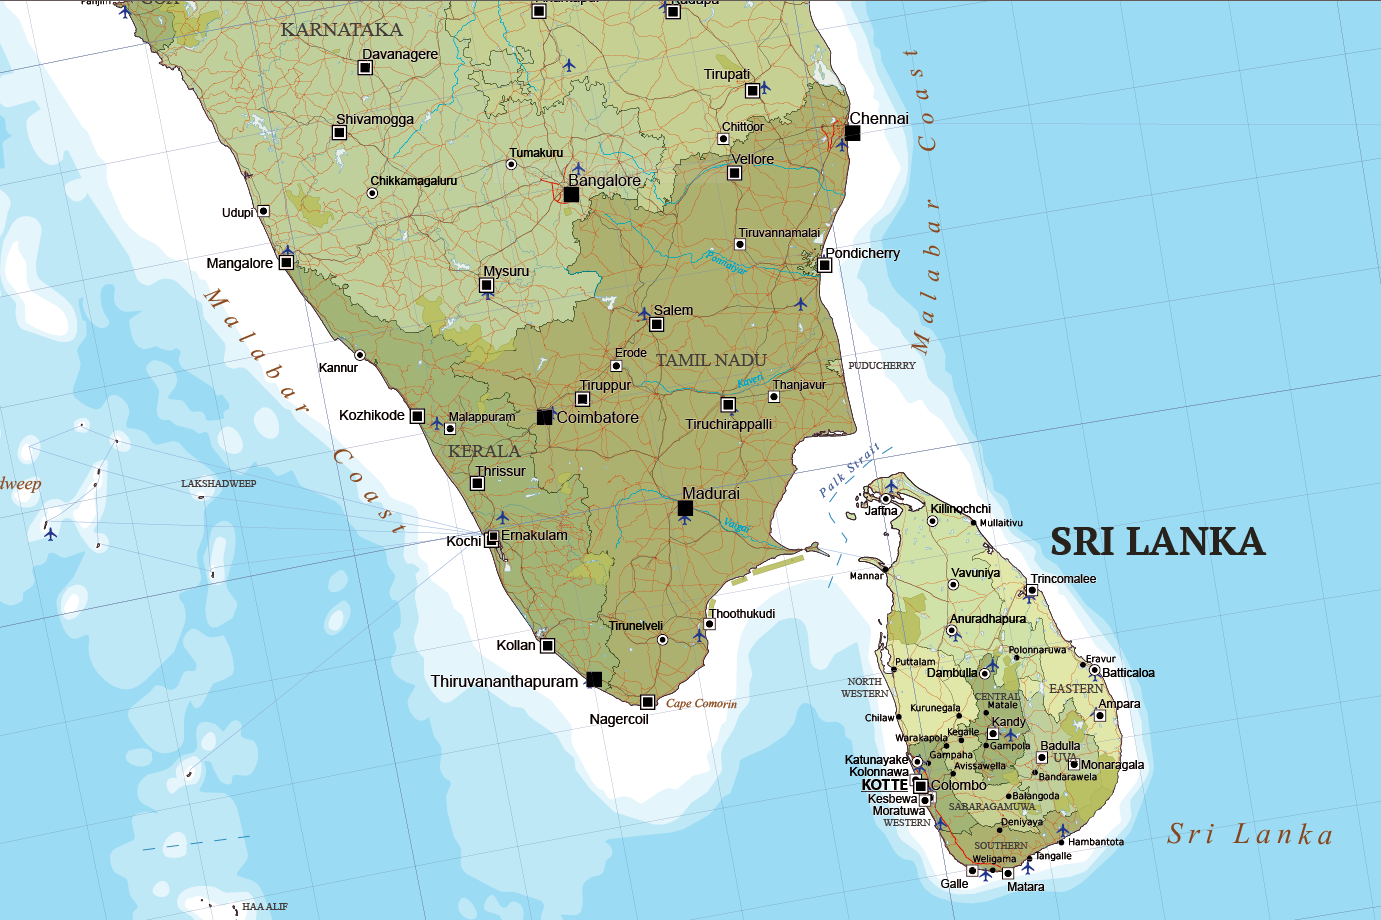 map of south asia and near east